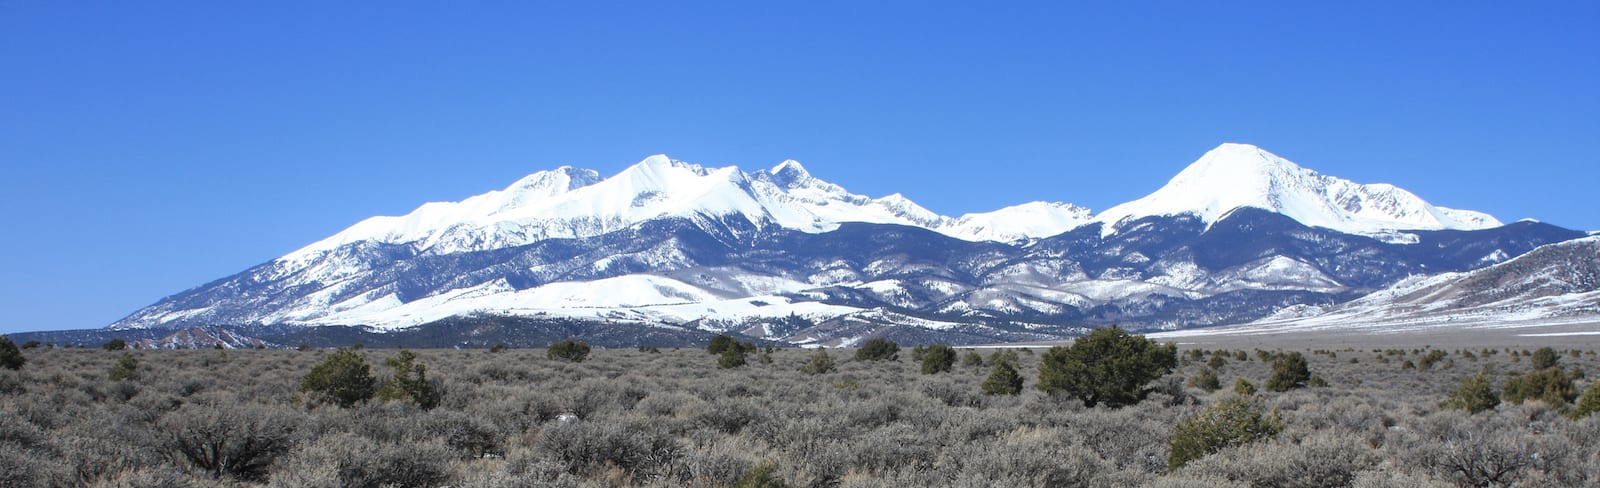 Blanca Peak Fort Garland Colorado